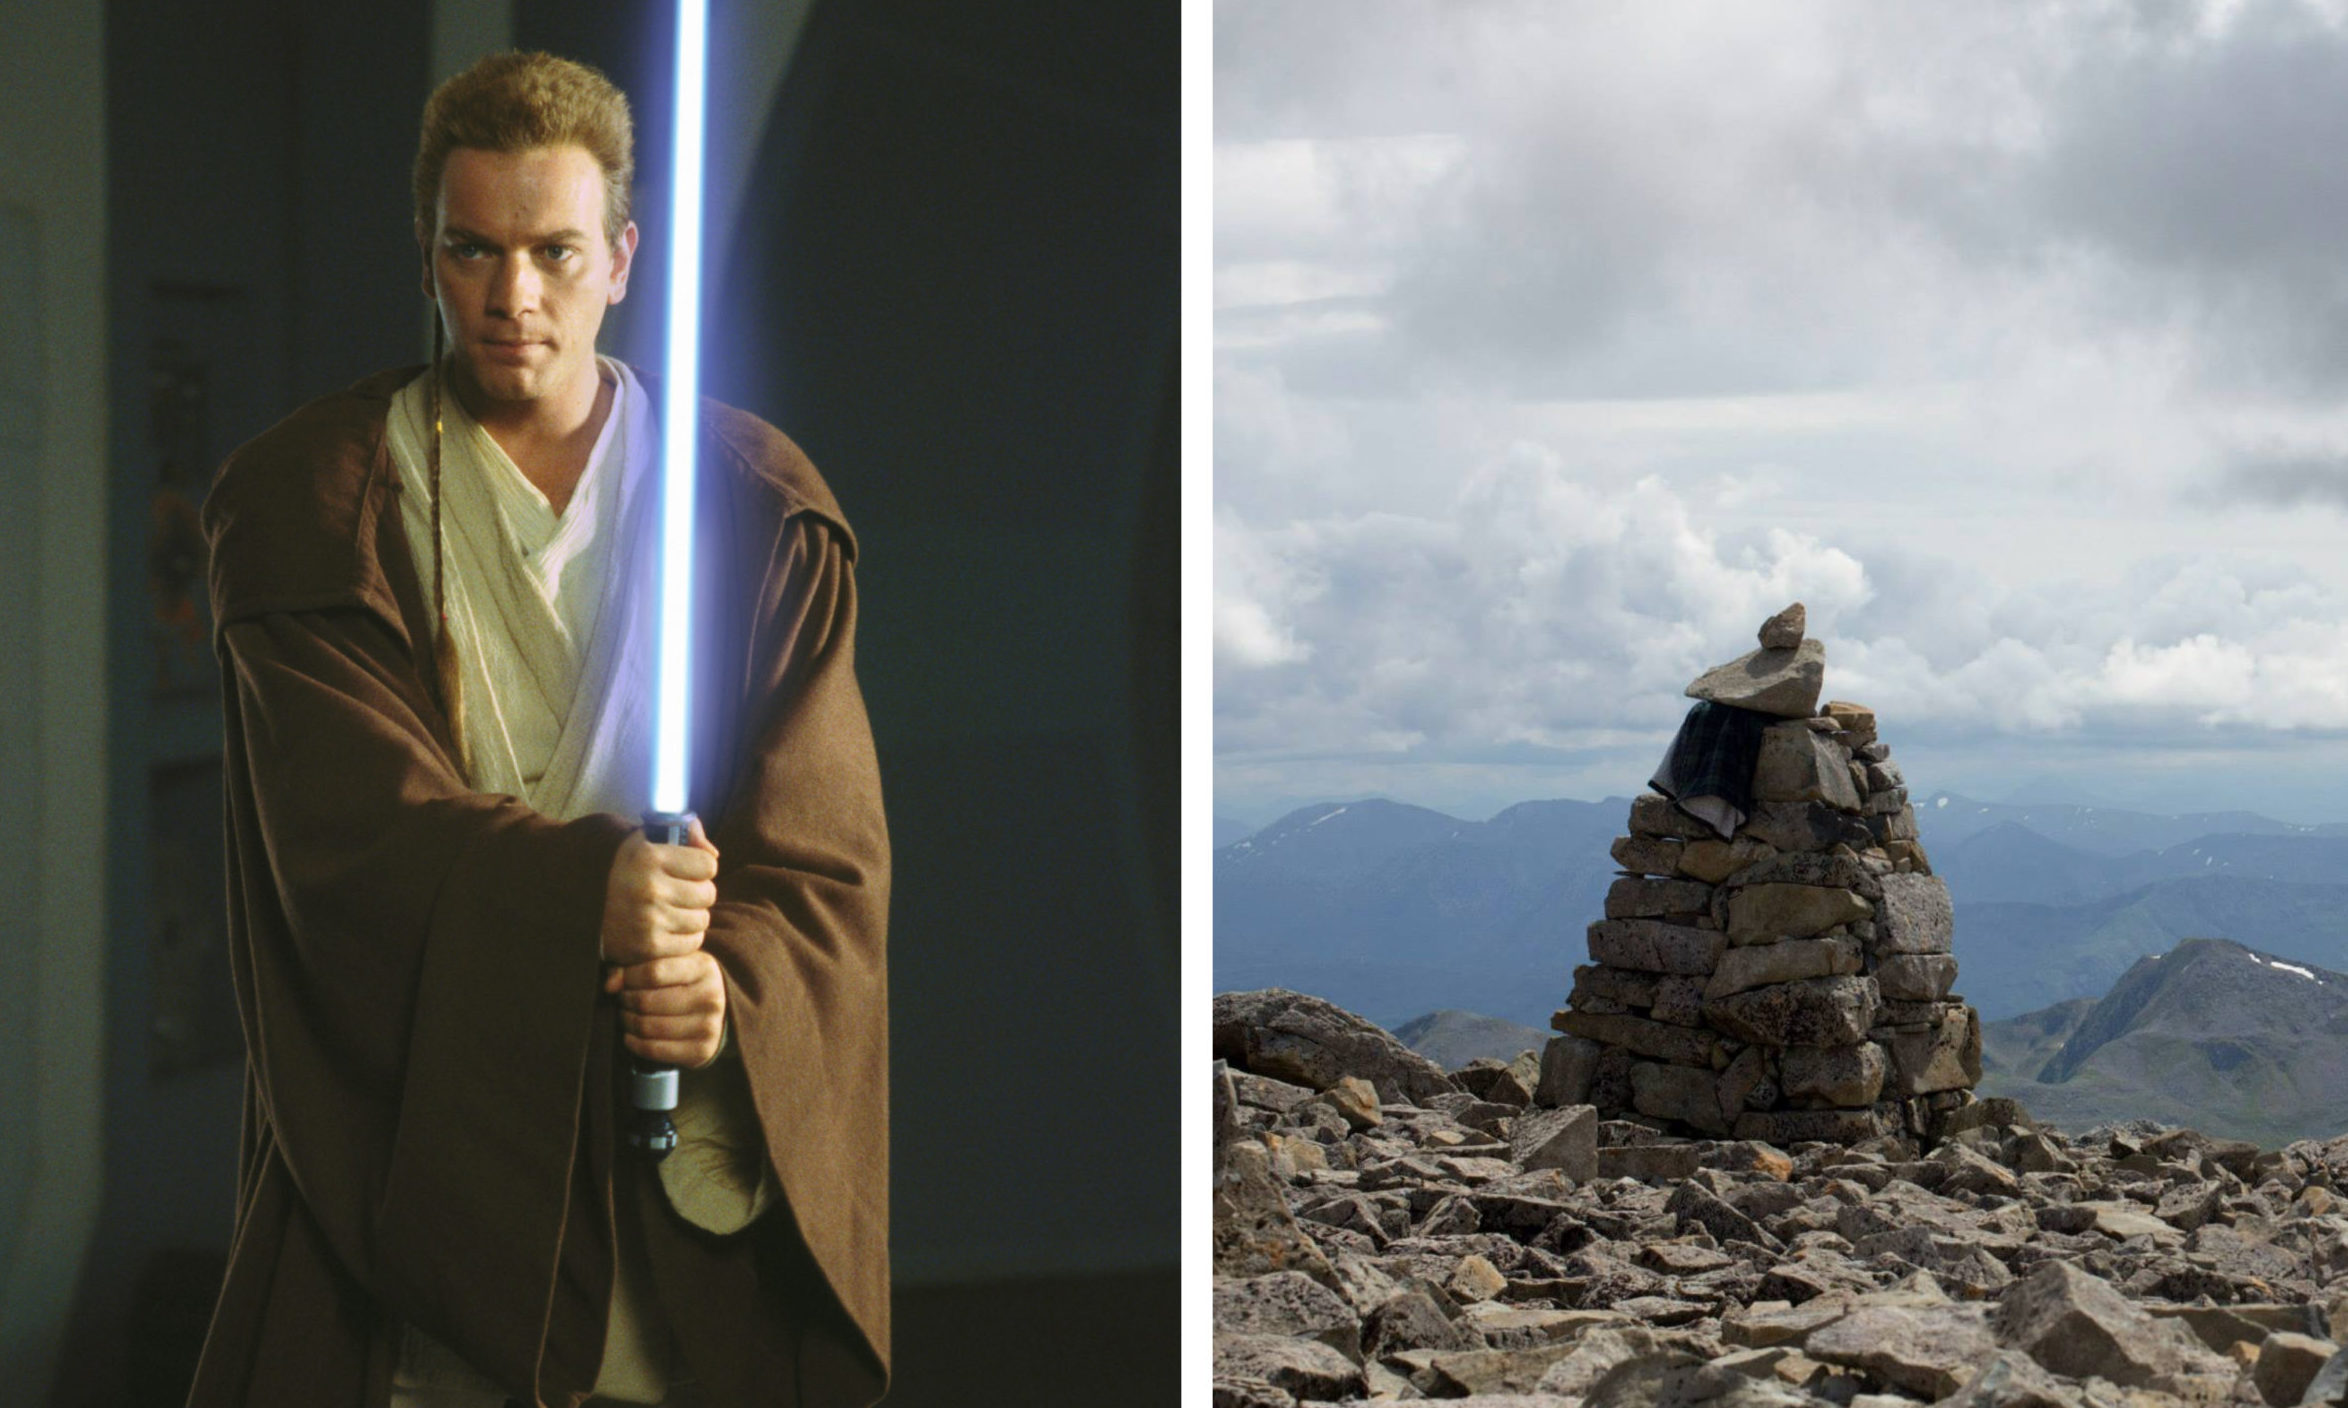 Ewan McGregor as Obi Wan Kenobi/A cairn at the top of Ben Nevis.